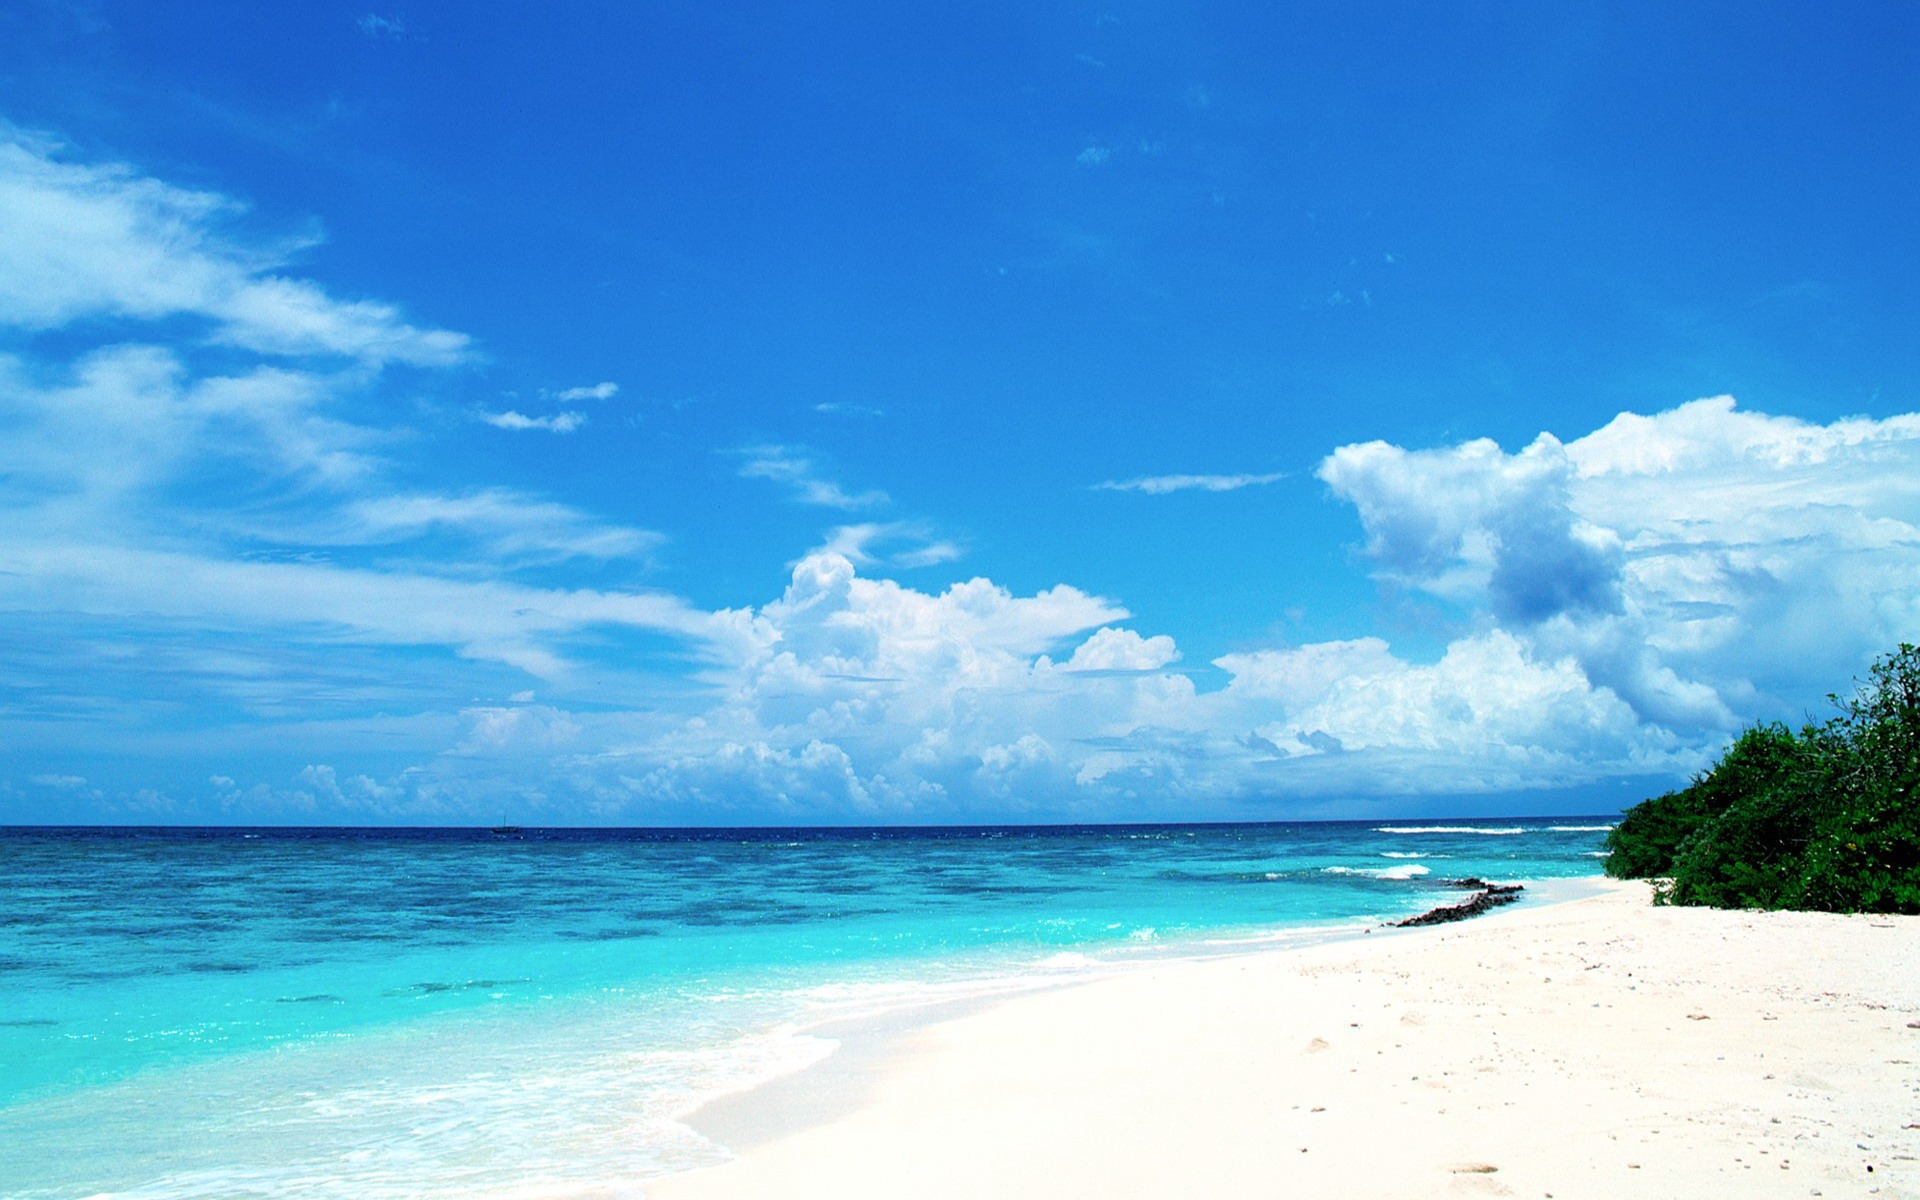 Maldives Beach Summer Wallpaper 1920x1200